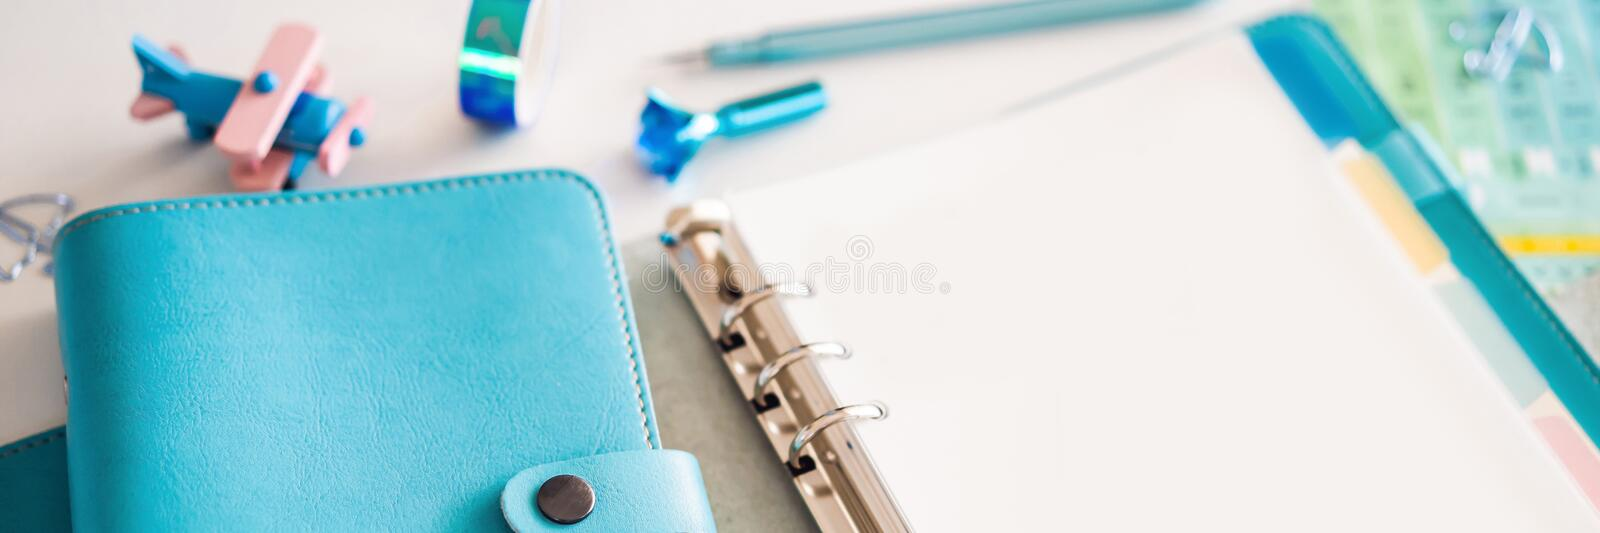 Notepad and stationery on white background. Planner for business and study. Fans of stationery BANNER, LONG FORMAT. Notepad and stationery on white background royalty free stock image